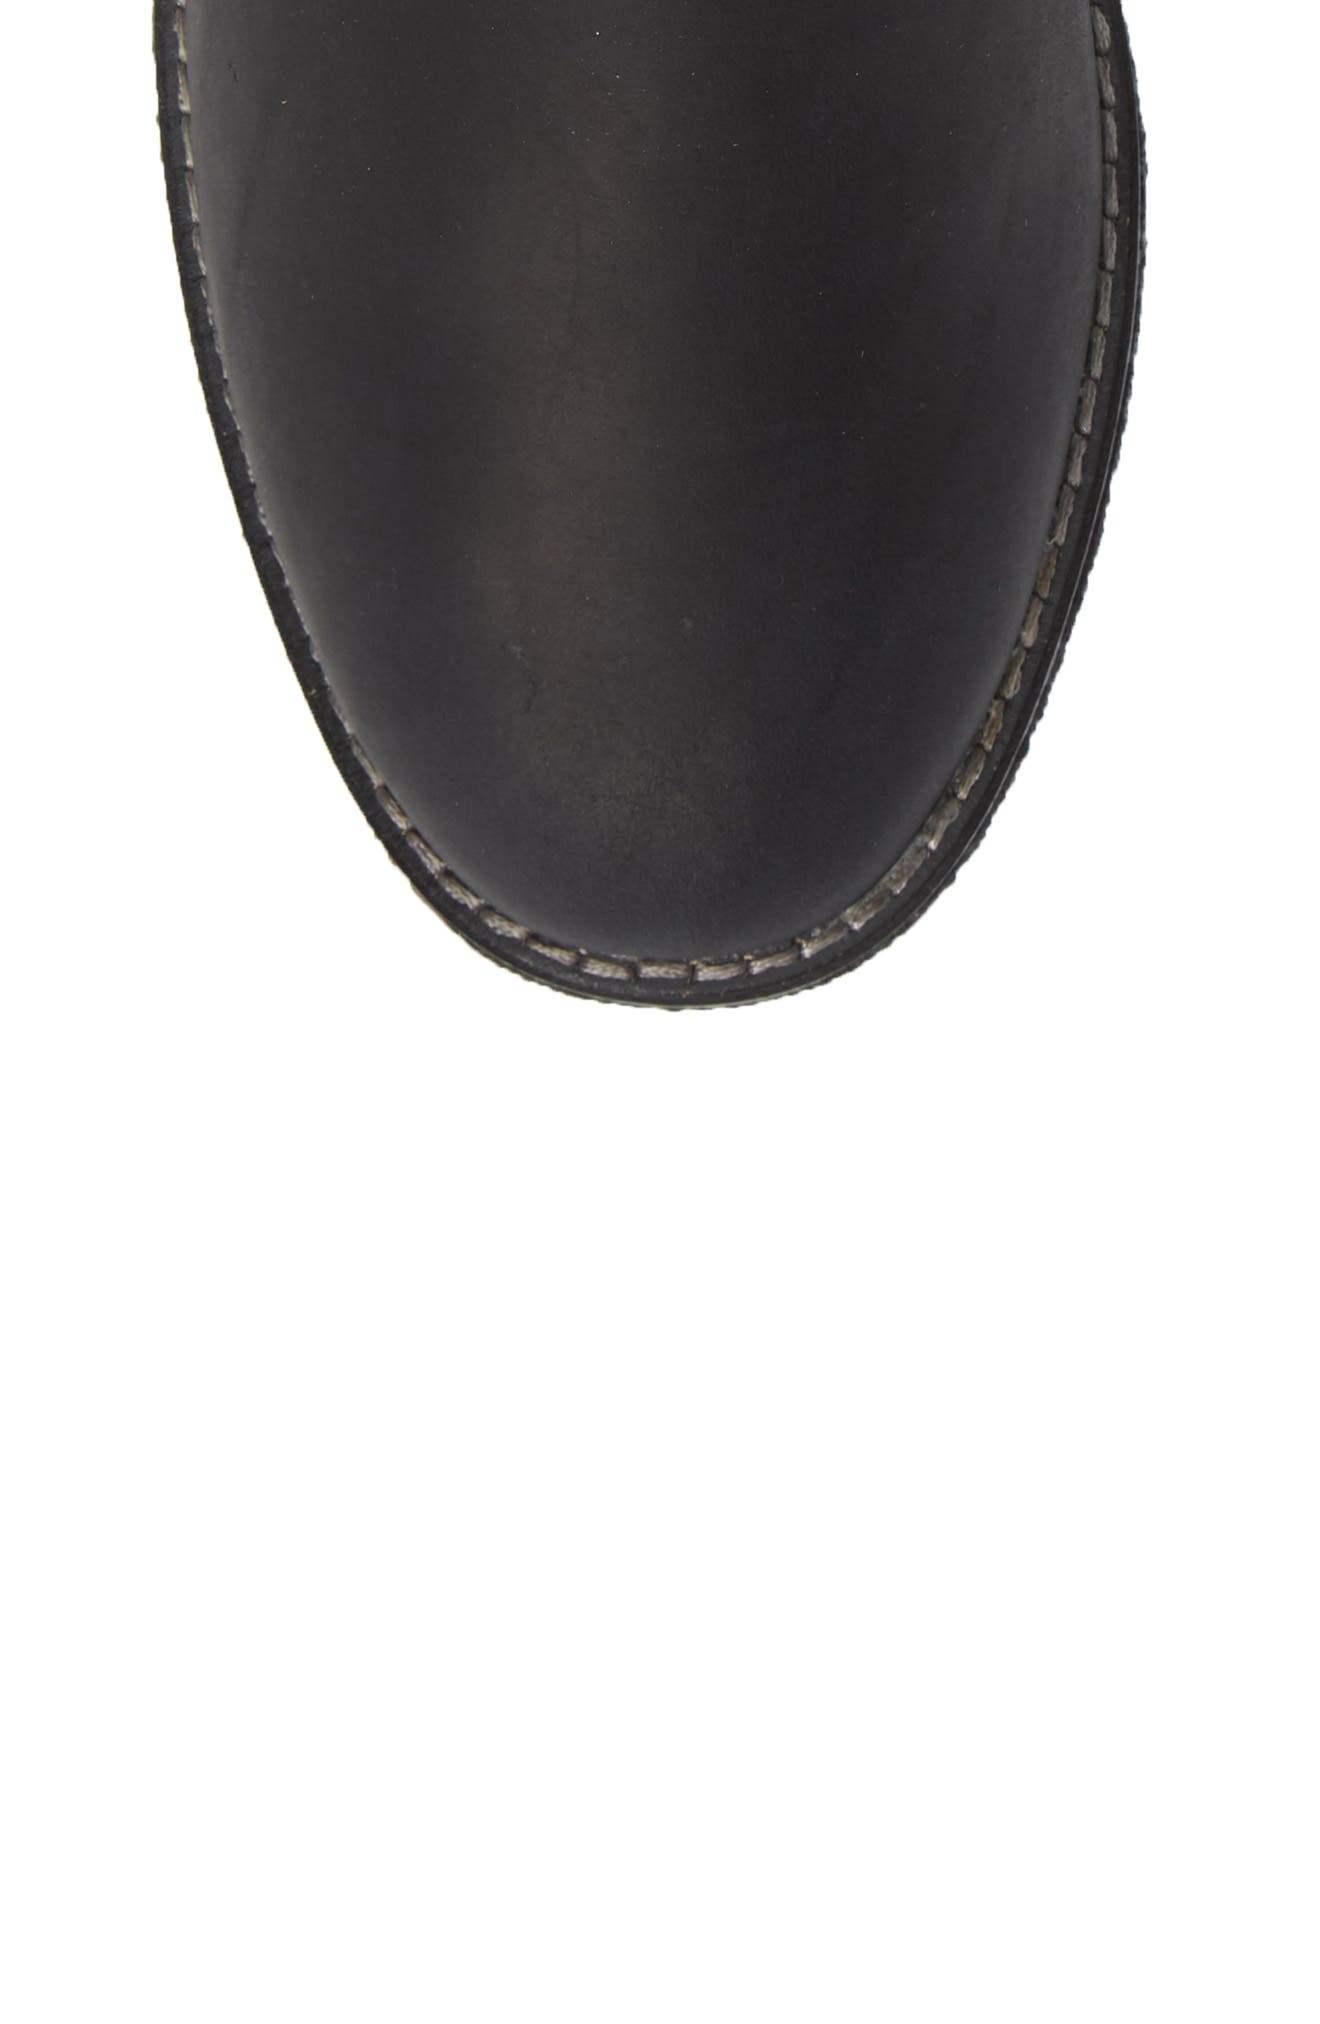 Maya Ronan Bootie,                             Alternate thumbnail 5, color,                             BLACK SUEDE/ LEATHER